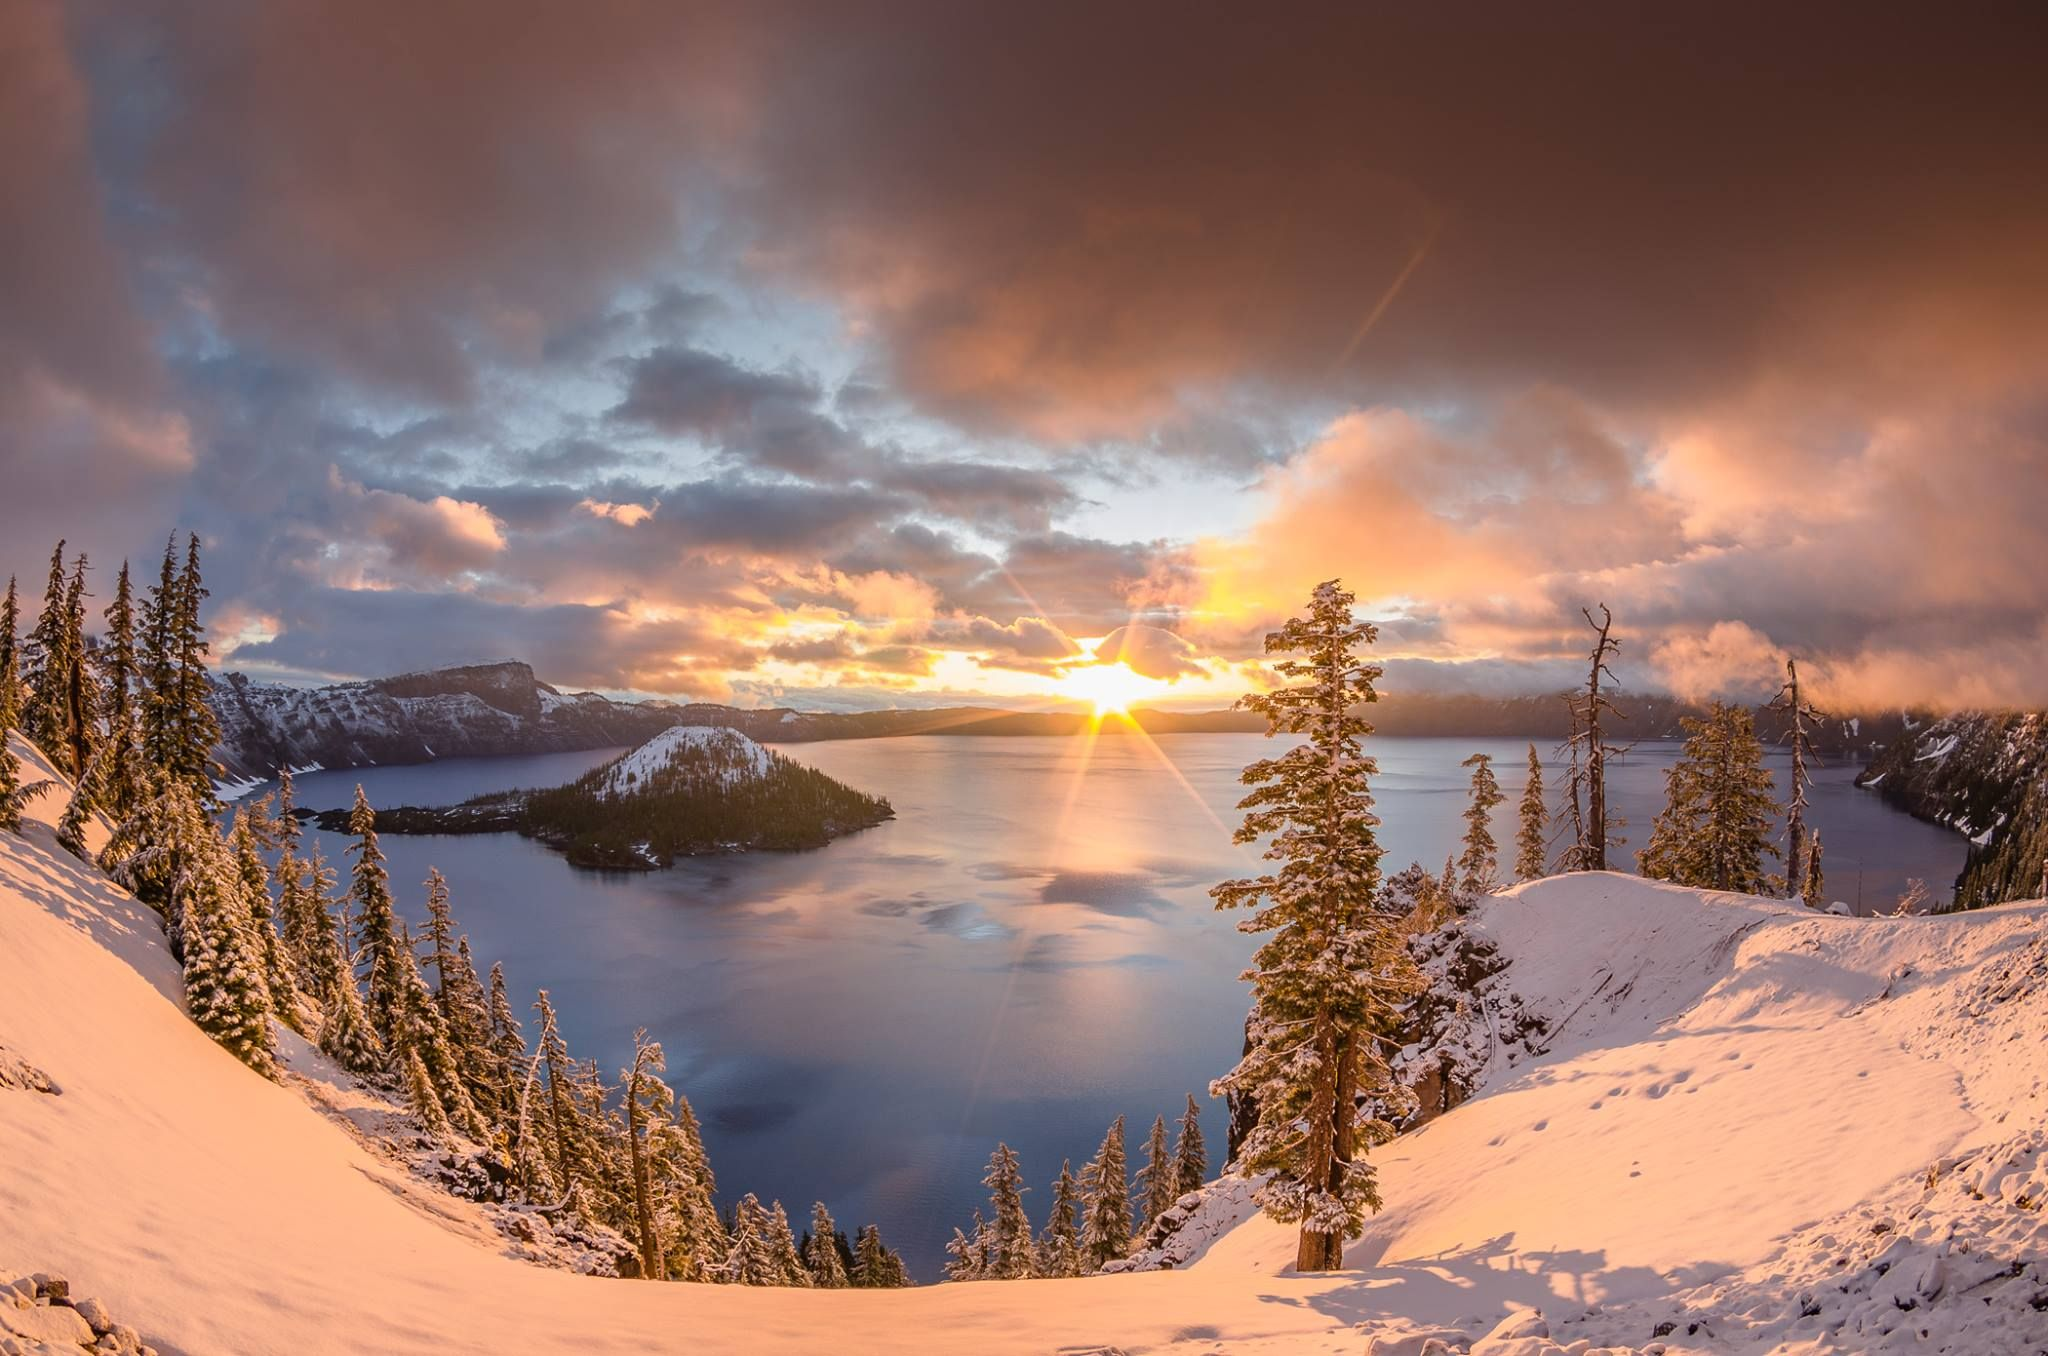 Pacific Northwest | MARK LILLY PHOTOGRAPHY